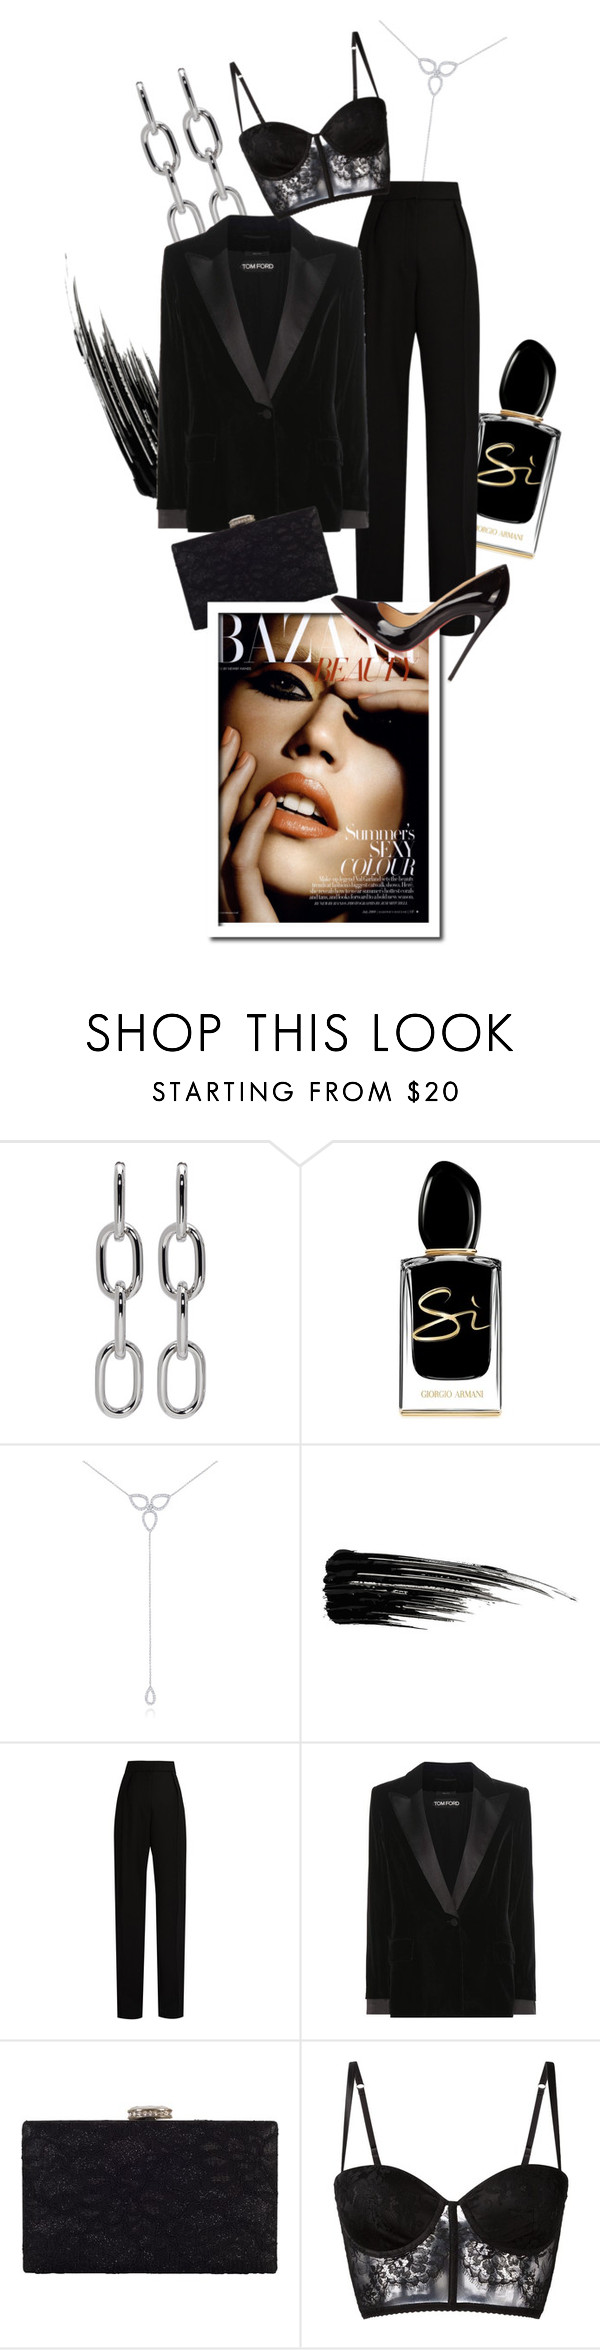 """""""Seductive Darkness"""" by dark-opulence ❤ liked on Polyvore featuring Alexander Wang, Giorgio Armani, KC Designs, Urban Decay, Lanvin, Tom Ford, Chesca, I.D. SARRIERI and Christian Louboutin"""